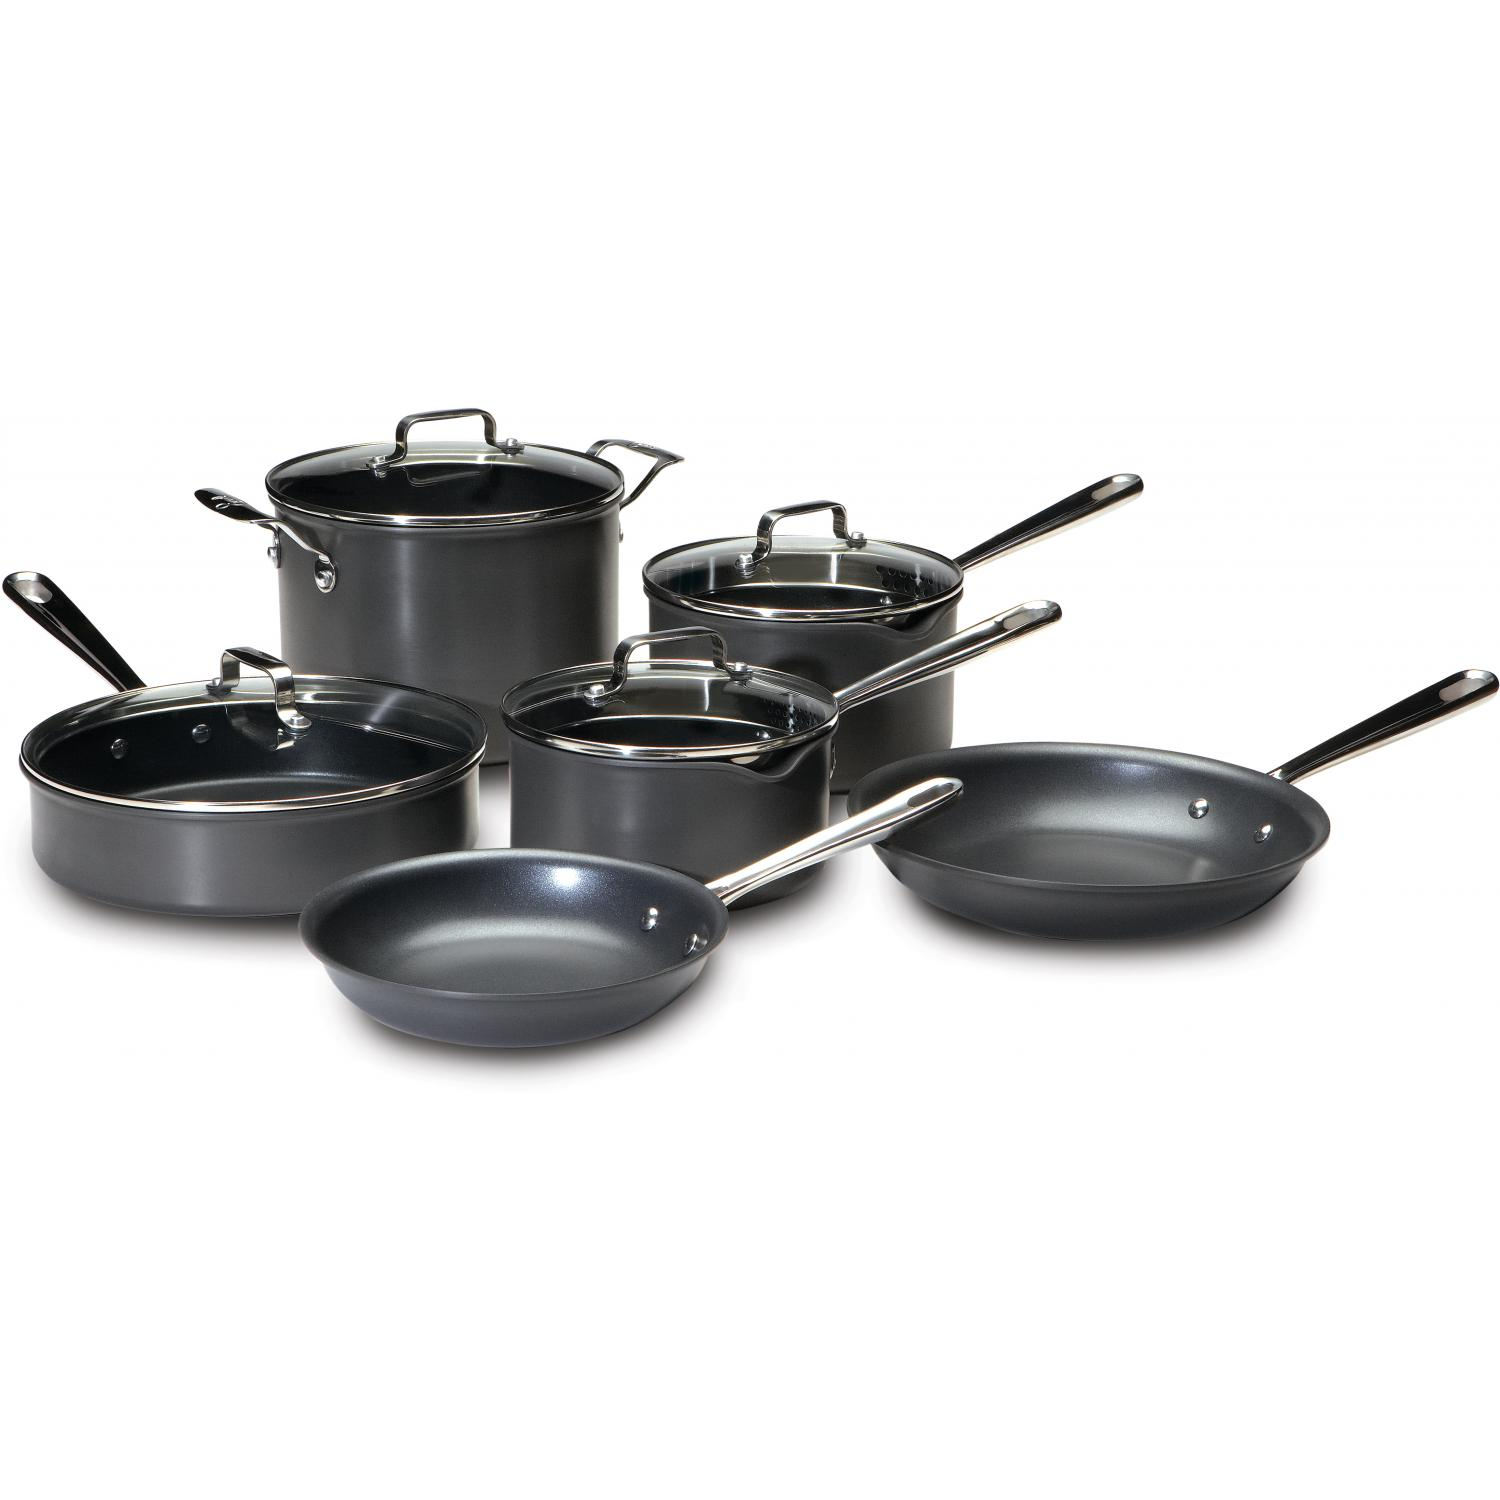 Emerilware By All-Clad 10-Piece Hard Anodized Nonstick Cookware Set - E920SA64